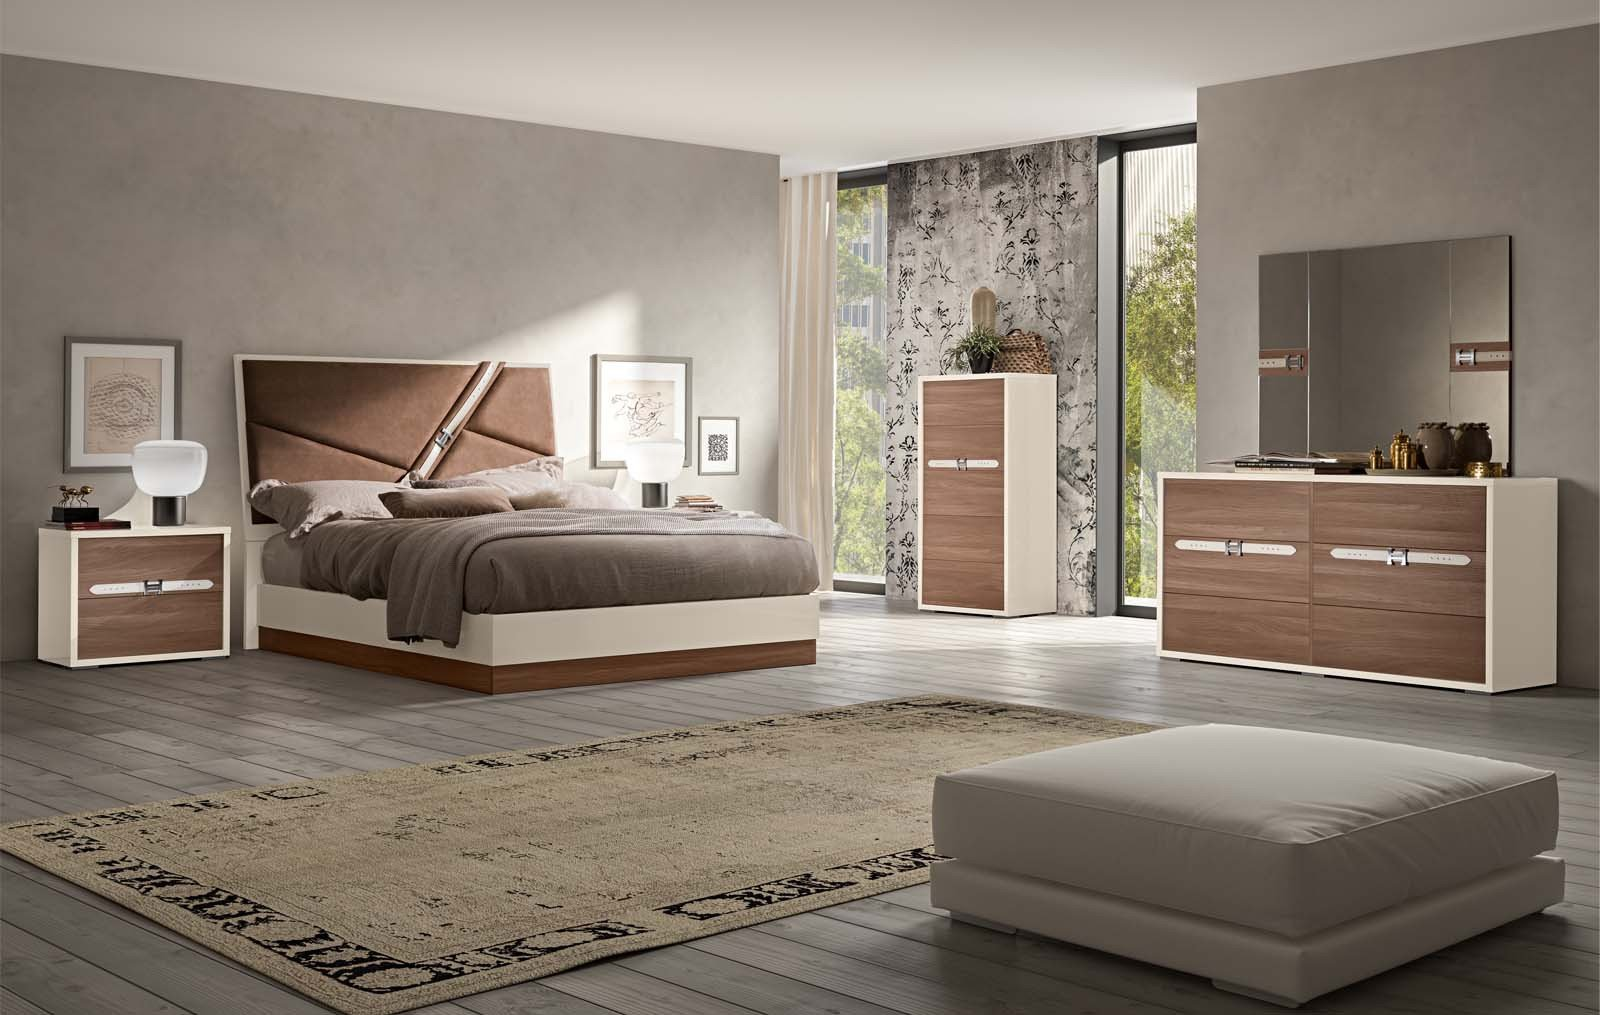 White Lacquer Bedroom Set Inspirational Evolution Bedroom Modern Bedrooms Bedroom Furniture